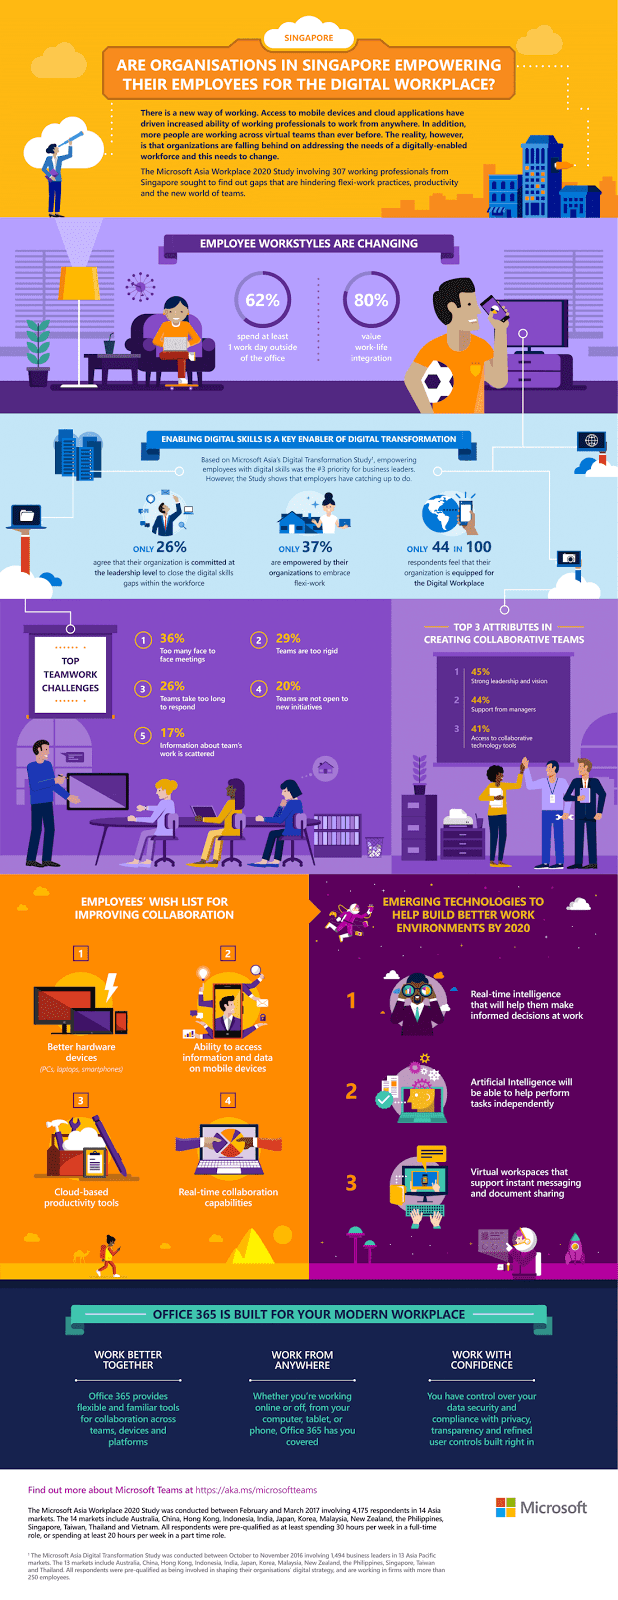 Source: Microsoft. Infographic illustrating findings of the Microsoft Asia Workplace 2020 Study,